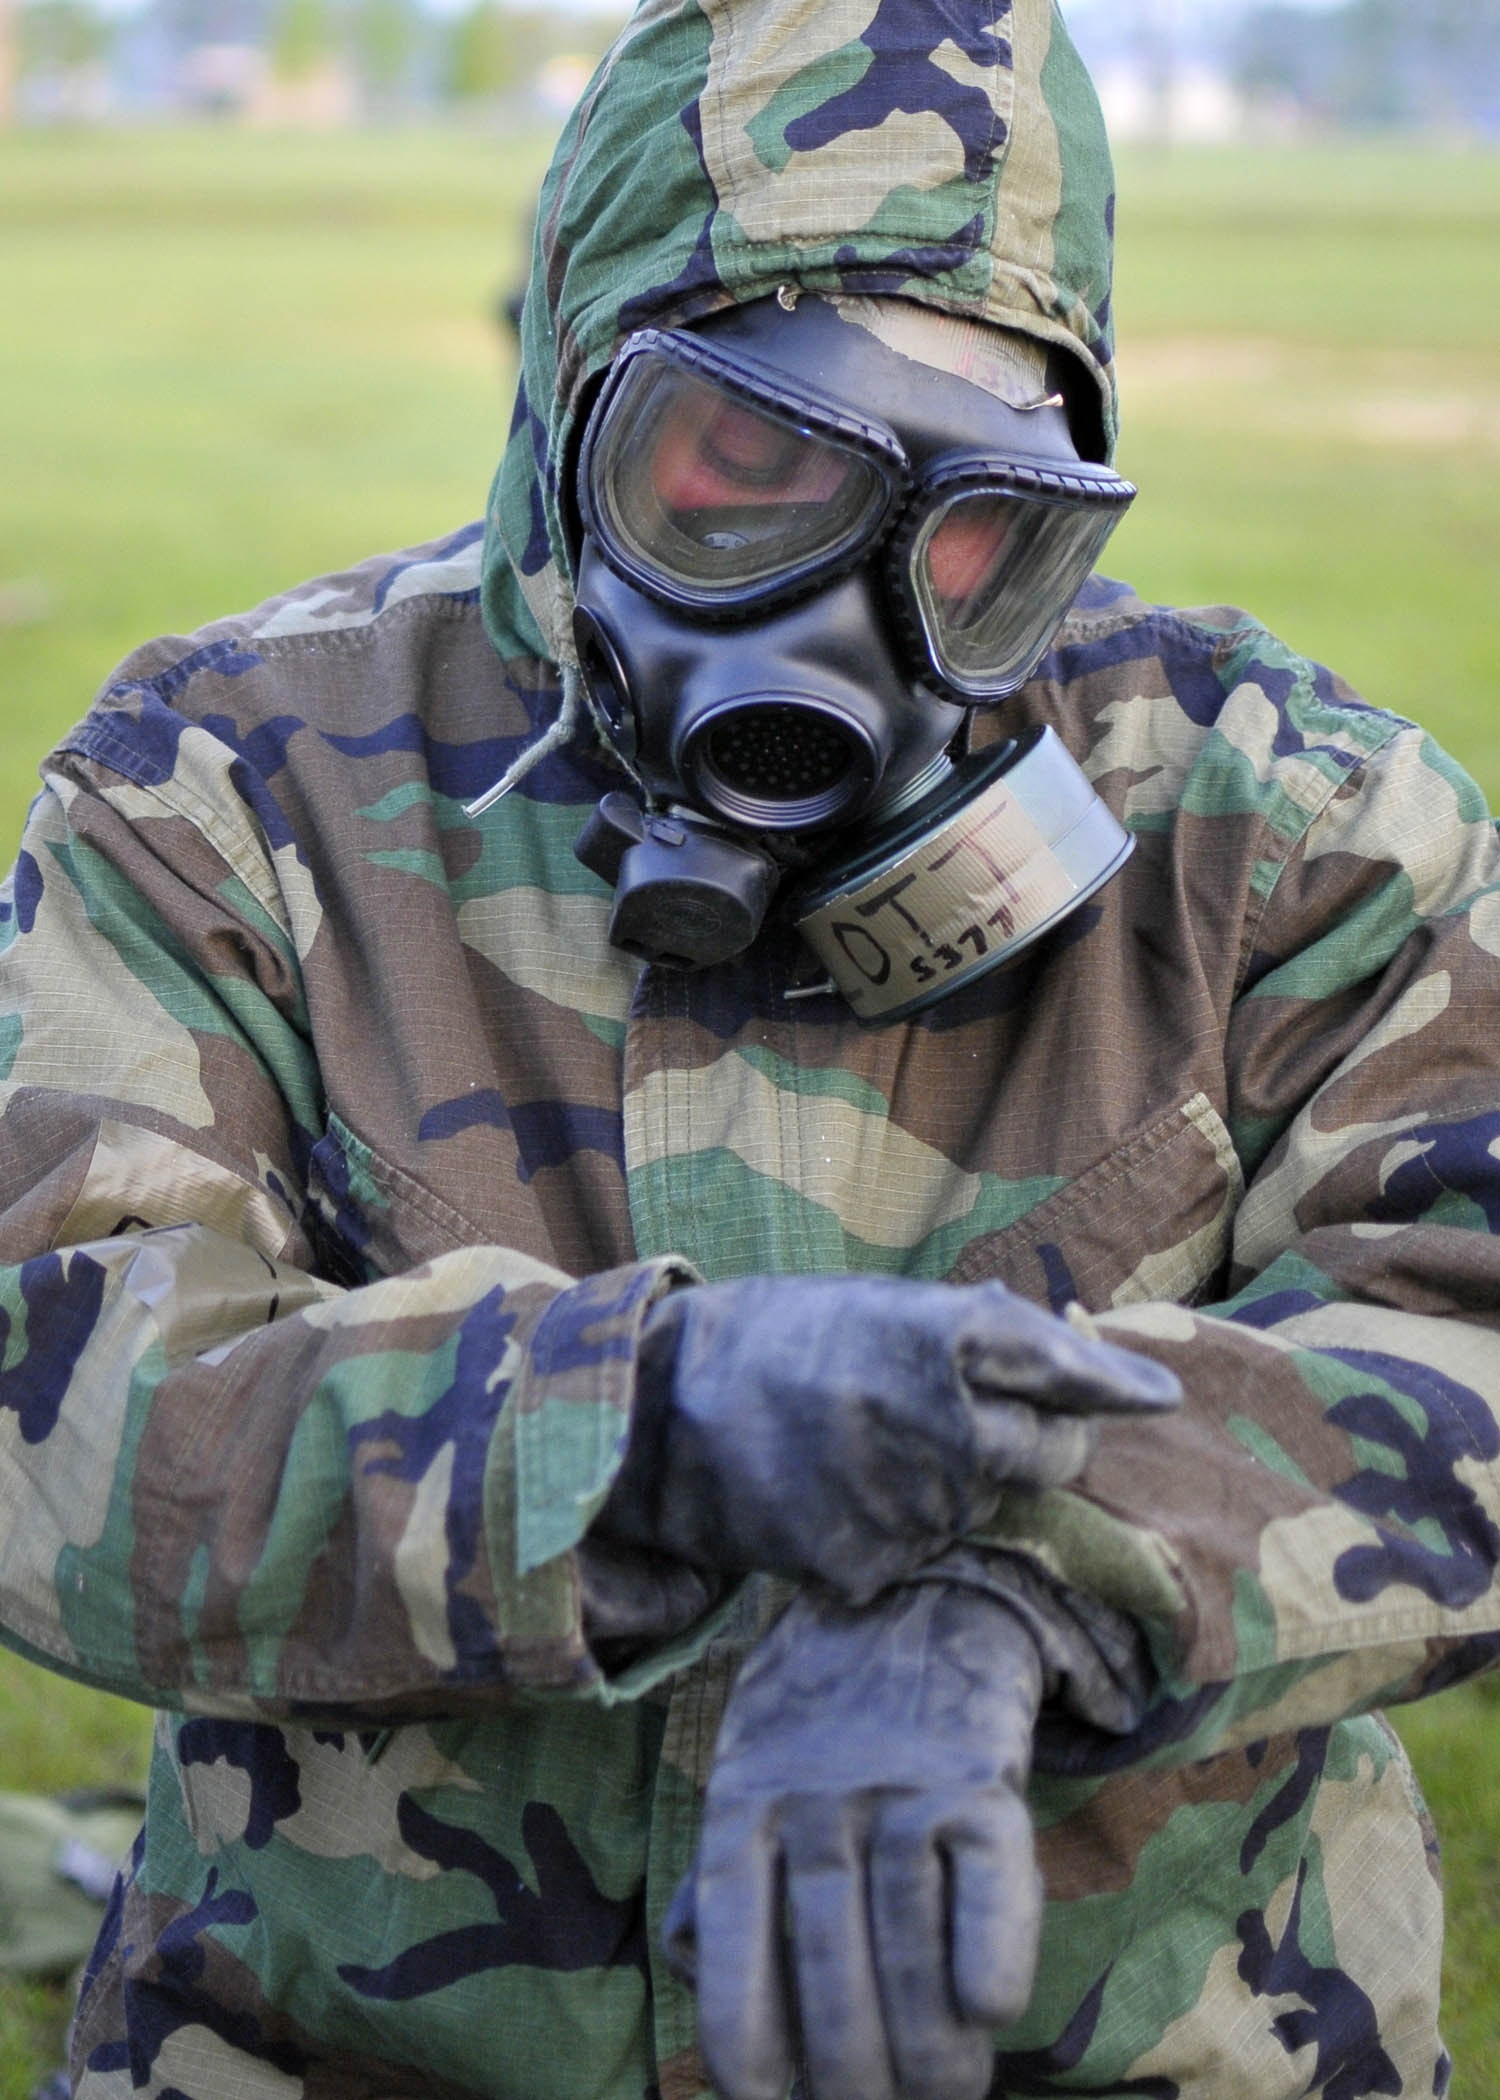 Why aren't military fatigues waterproof? - Quora